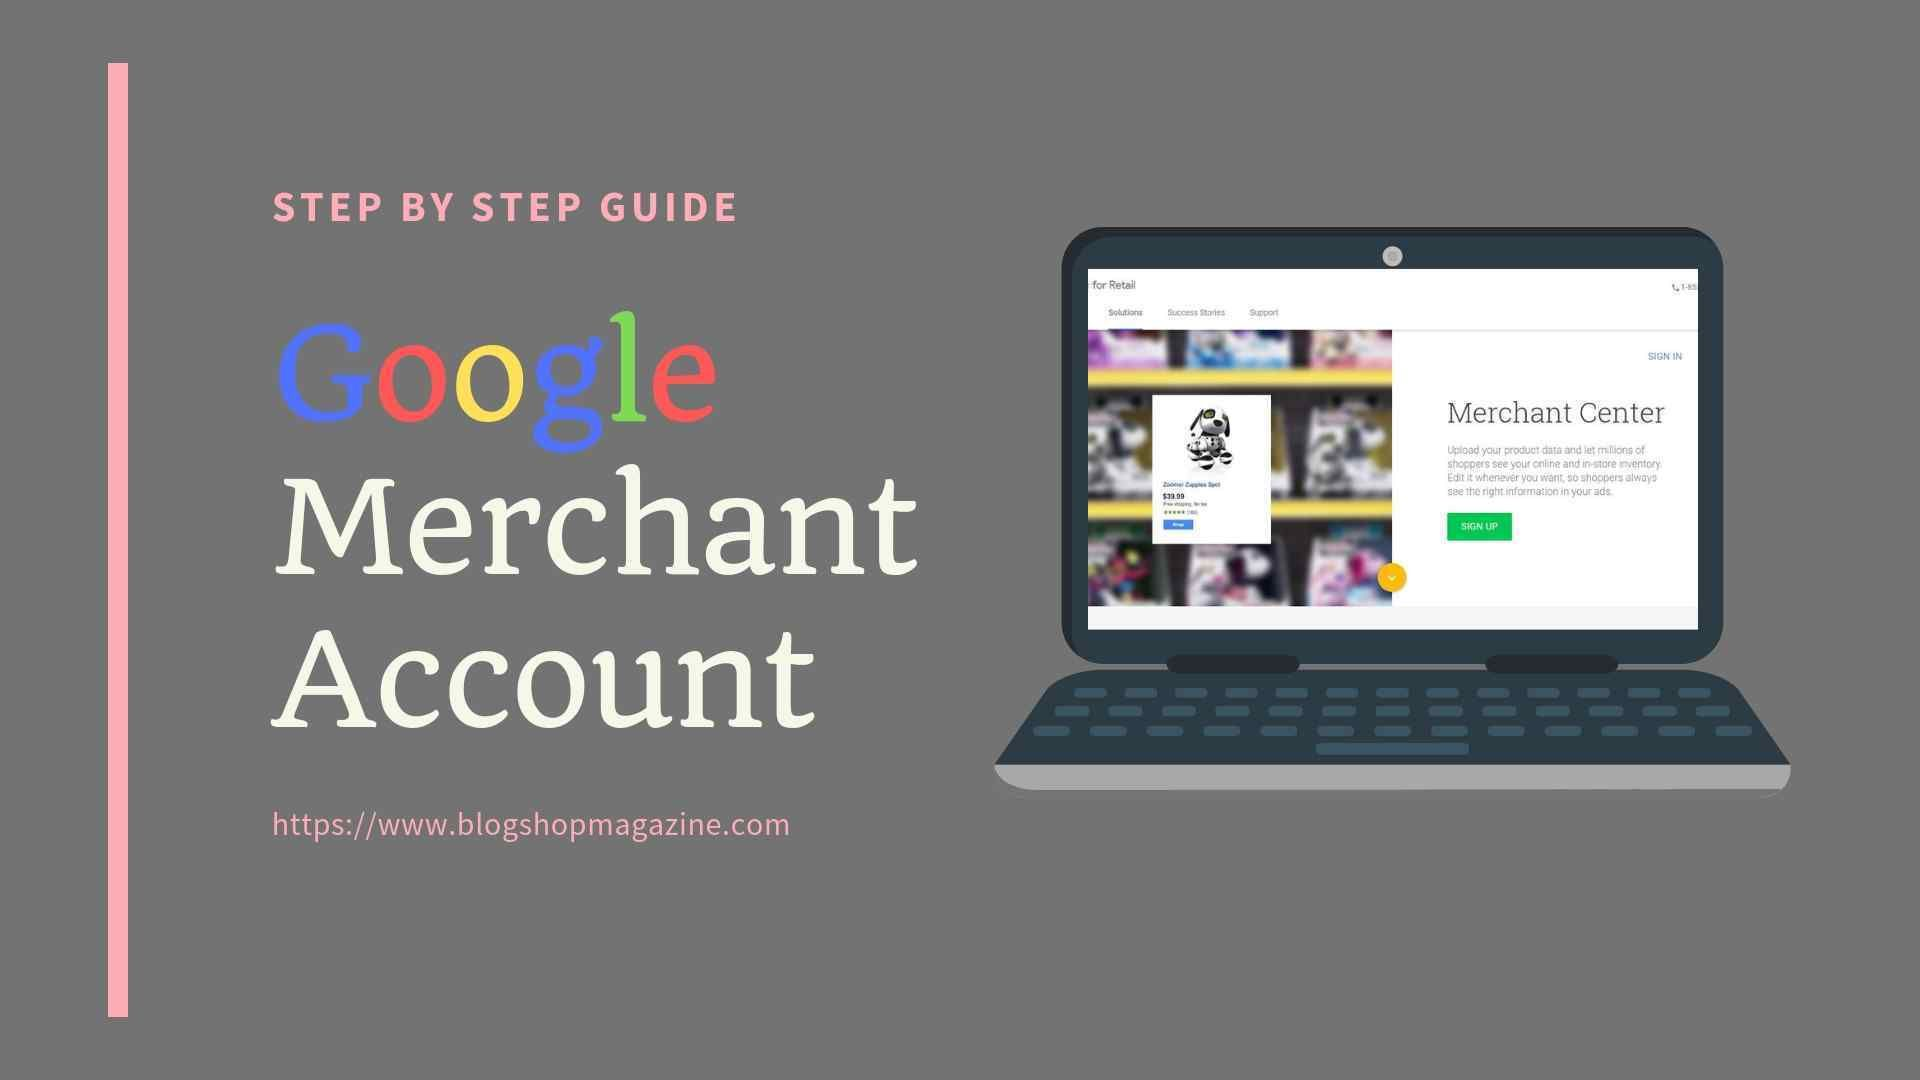 Google Merchant Account is an account which helps you to upload your